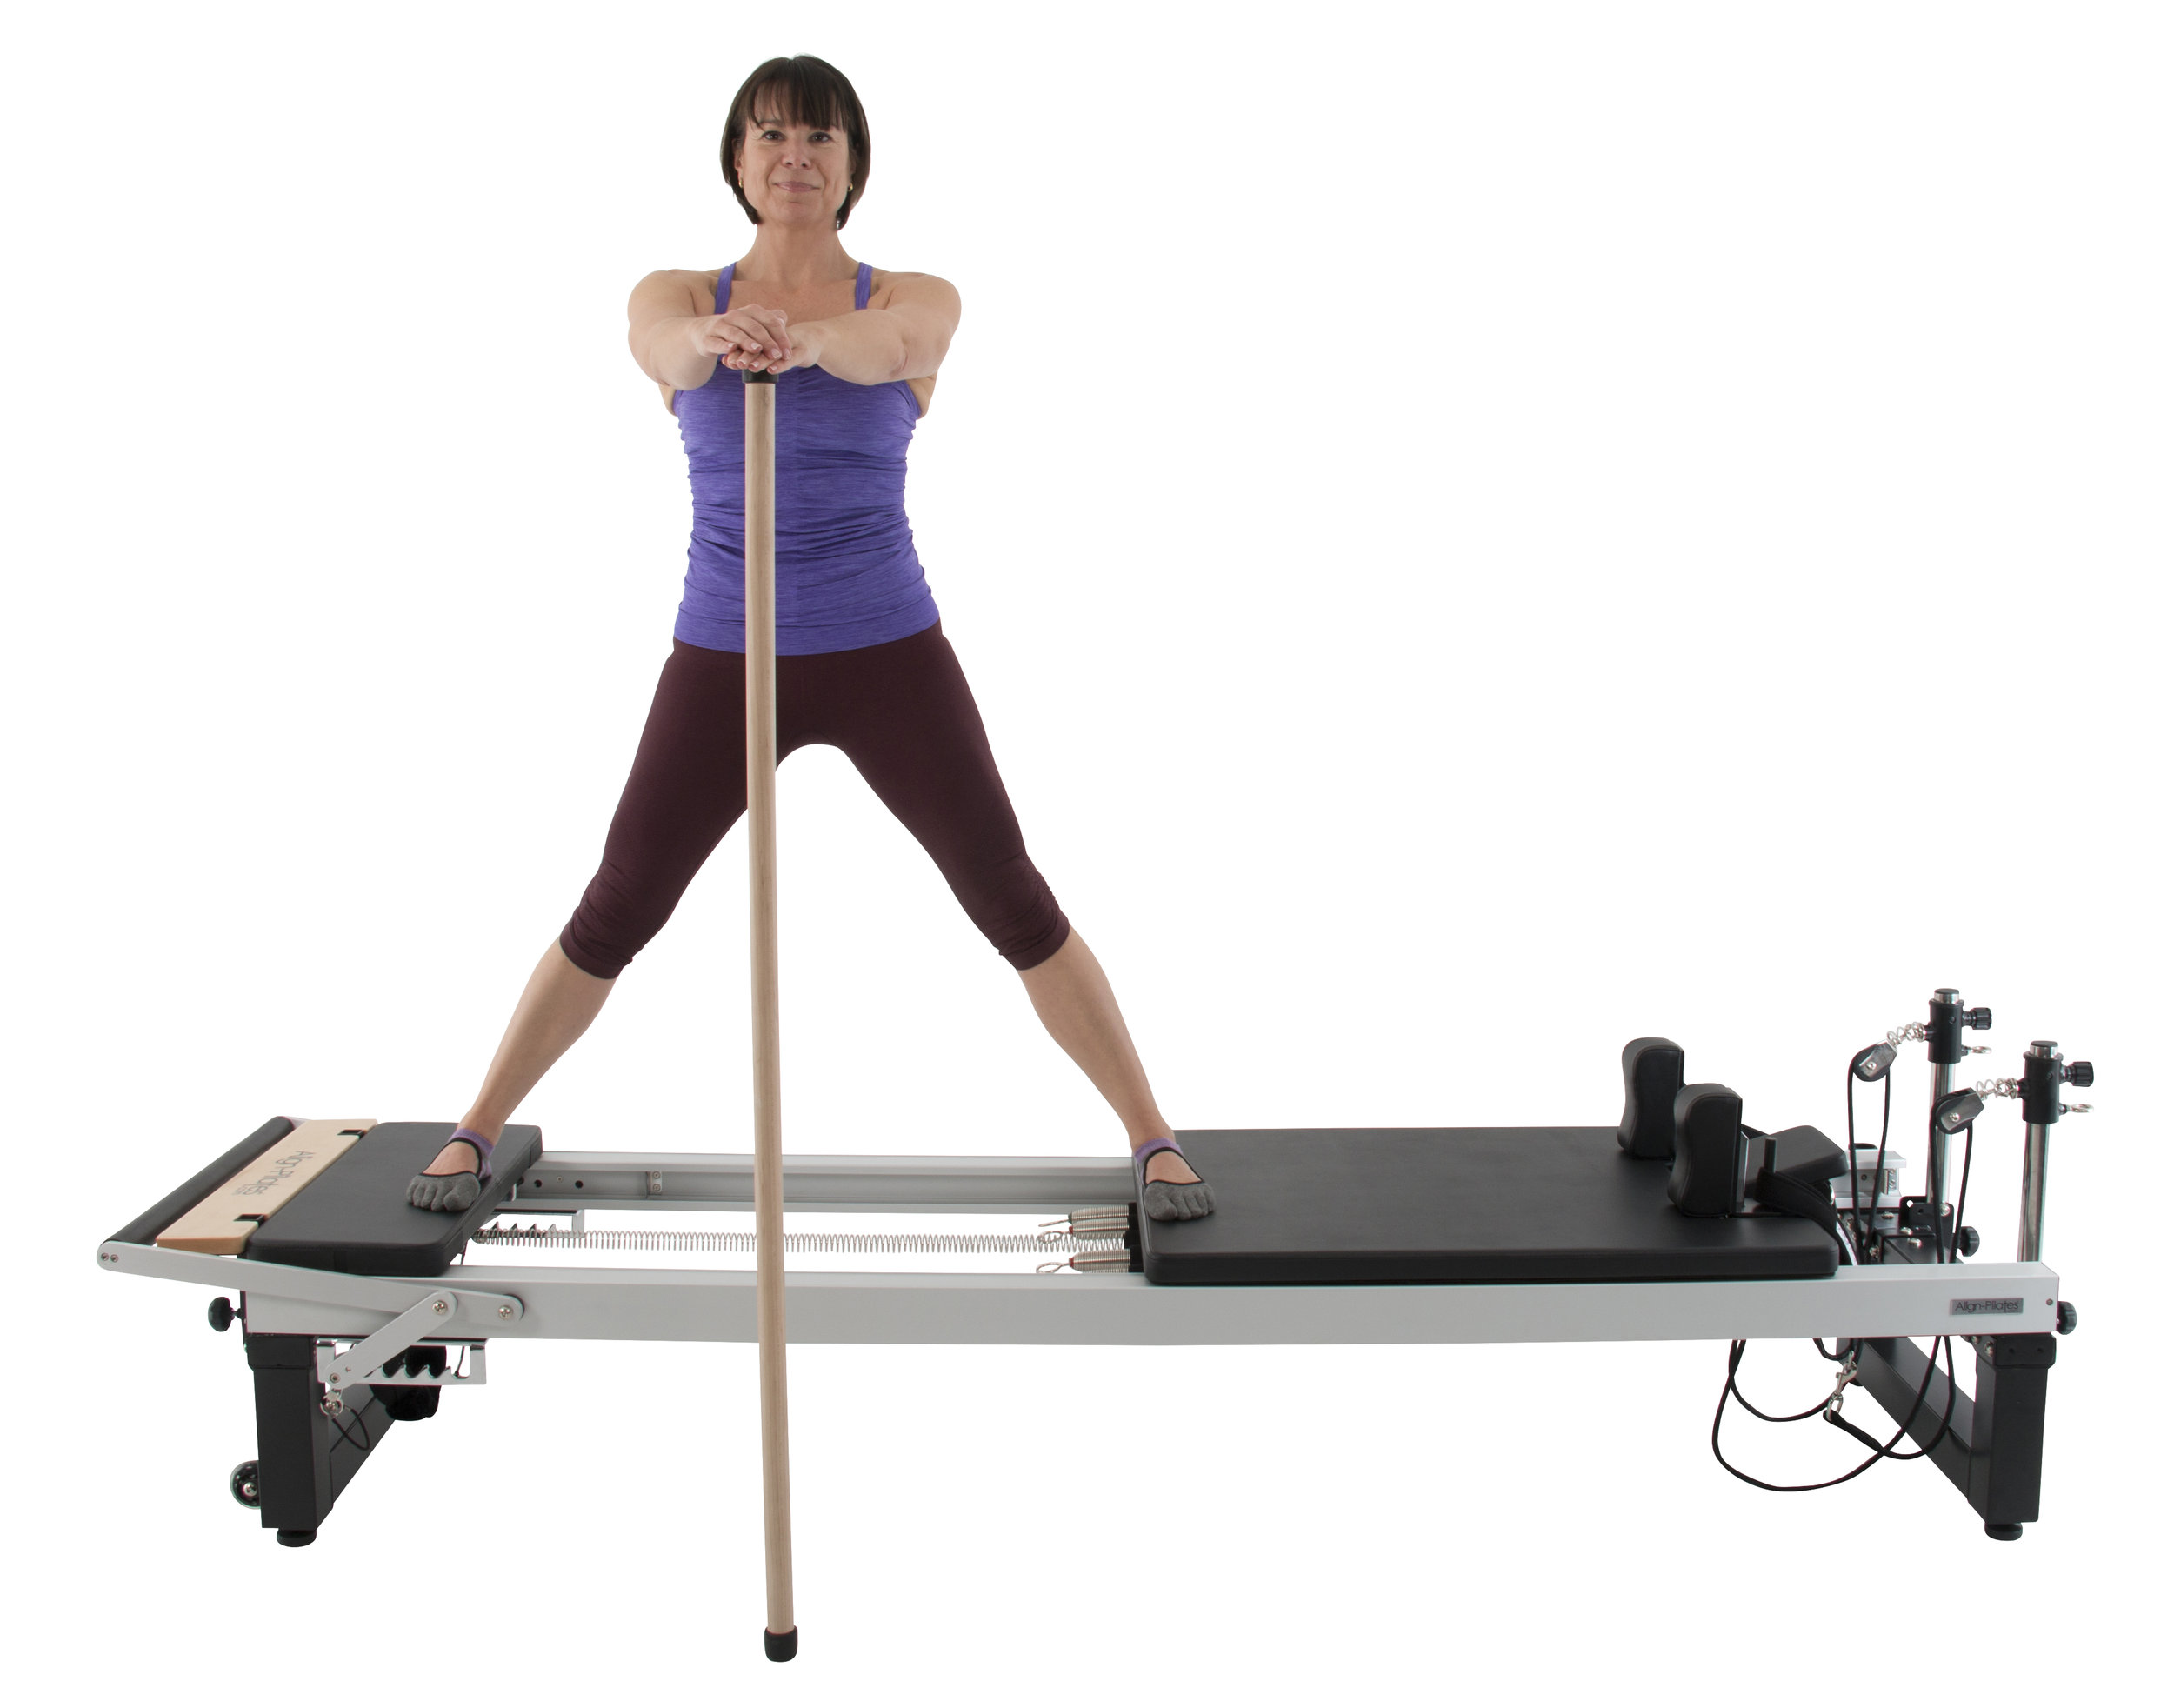 Align A2R2 studio pilates reformer with extension legs and maple pole